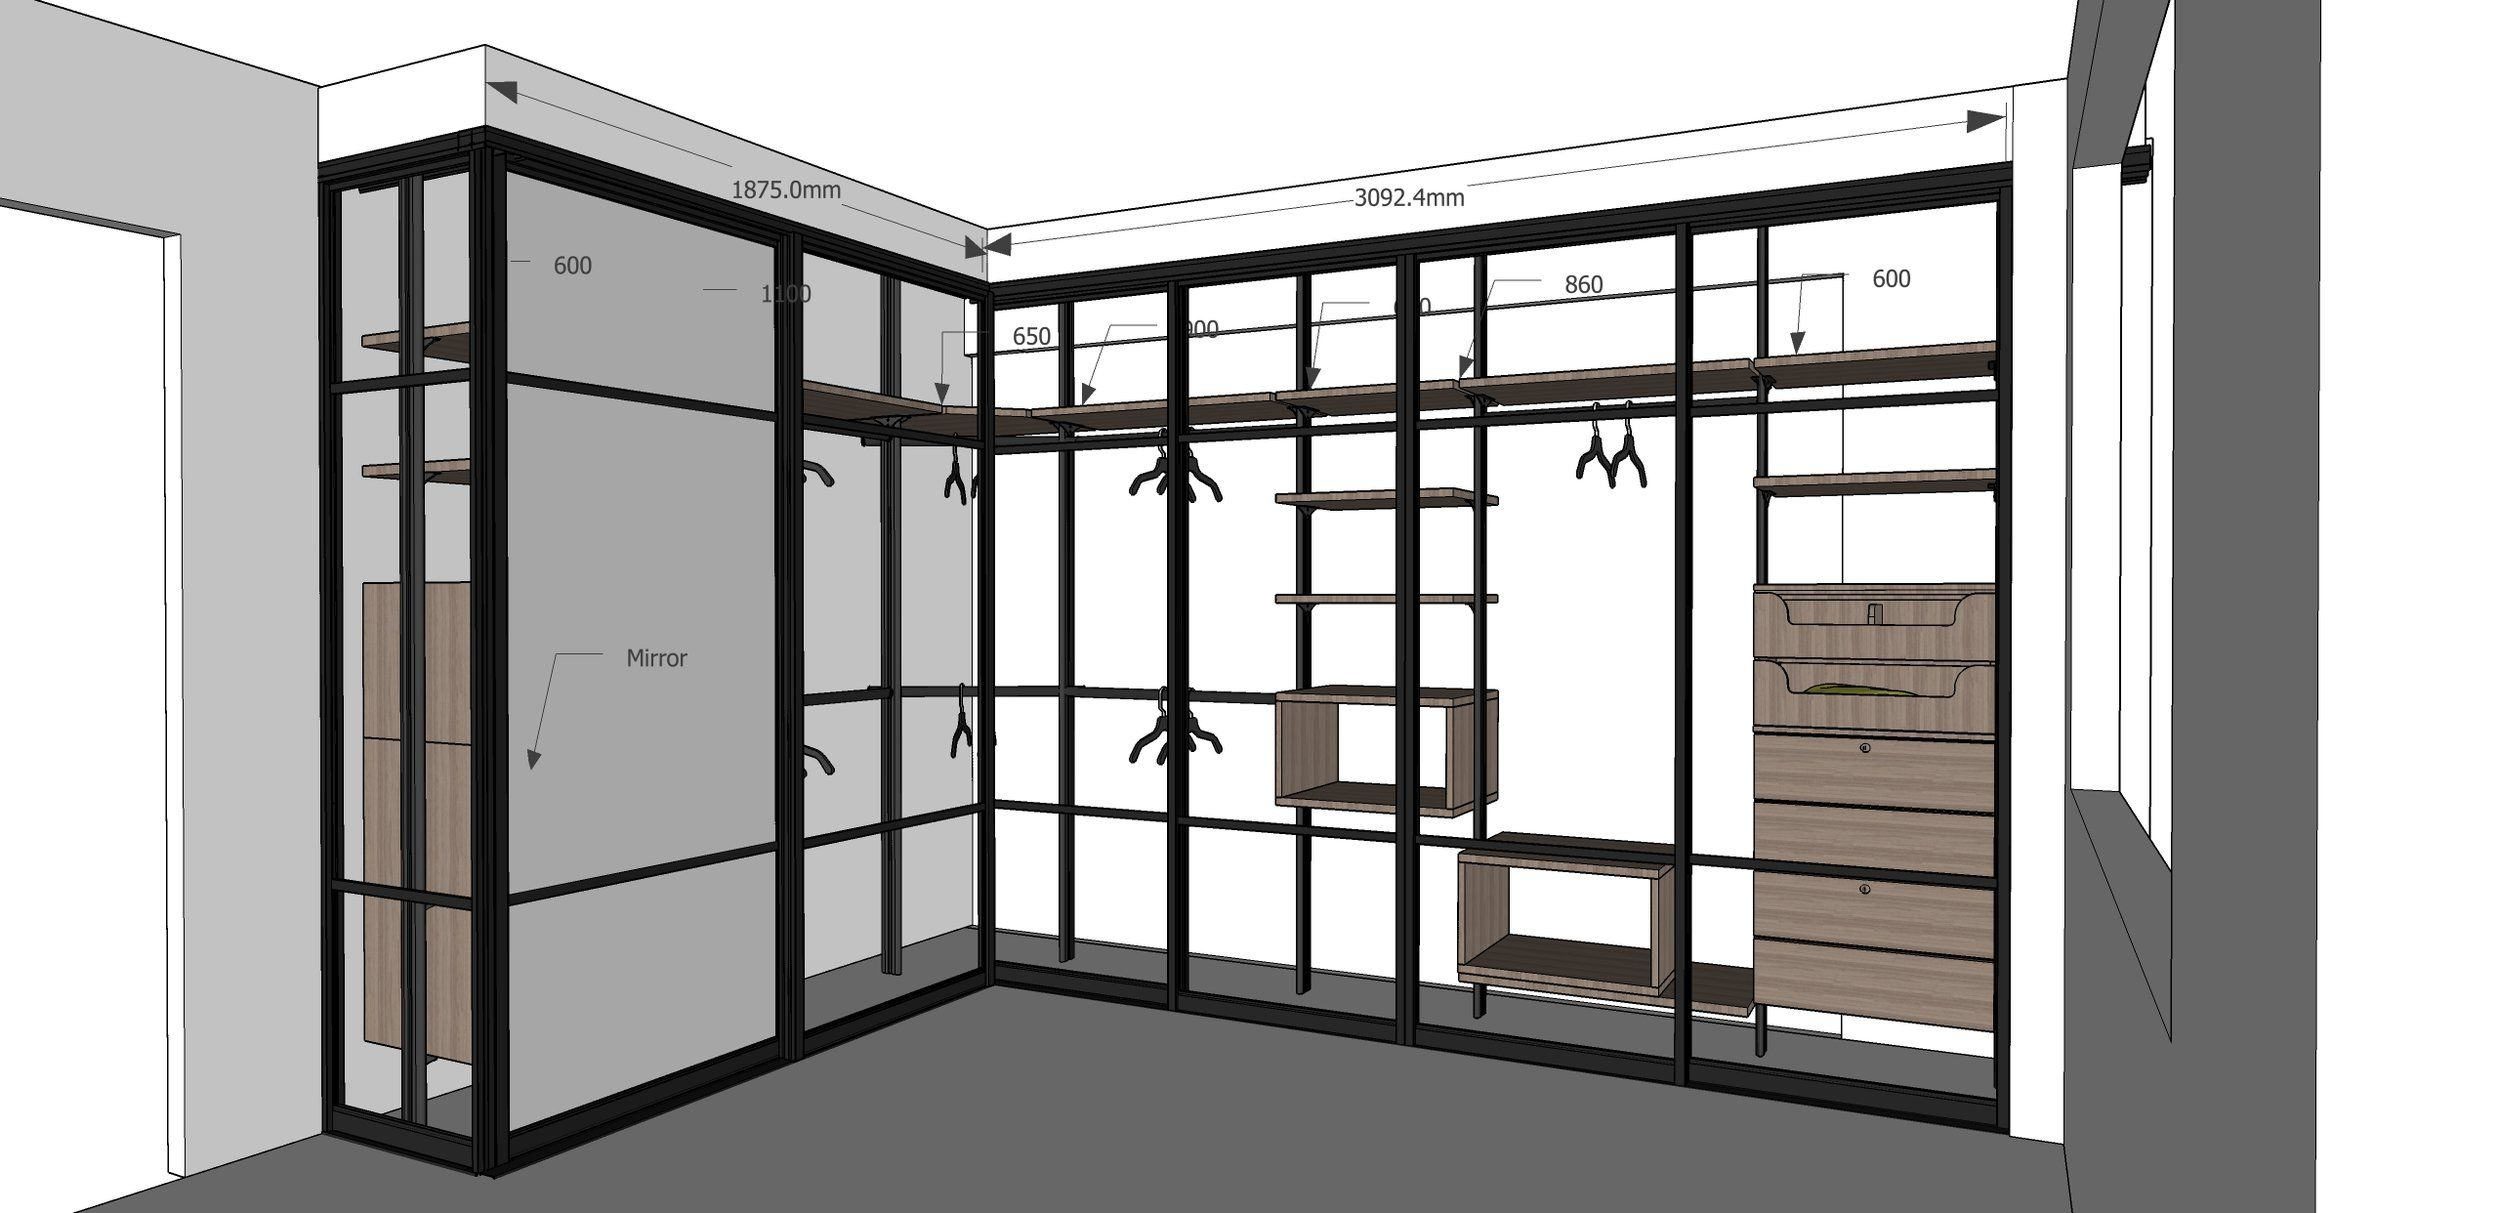 Would like to know how we can layout the Walk-In Wardrobe System ...